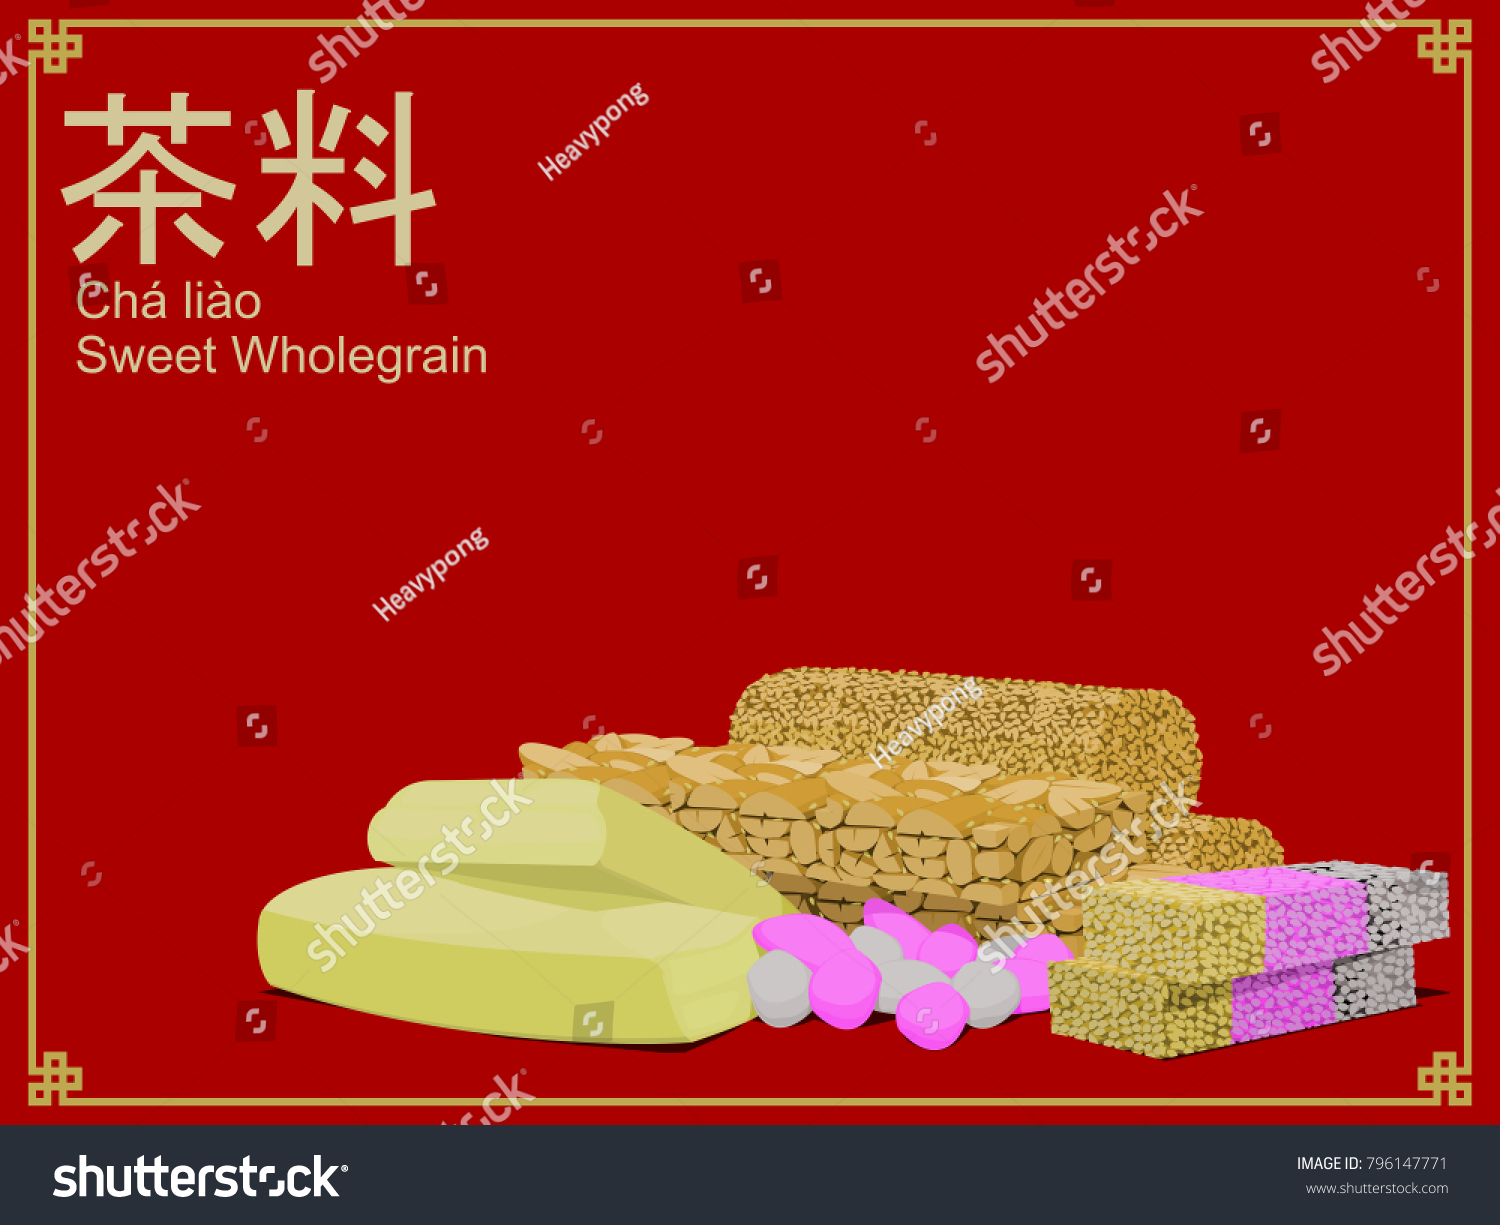 Whole grain symbol images symbol and sign ideas sweet wholegrain on red backgroundchinese people stock vector sweet wholegrain on red backgroundinese people believes that buycottarizona